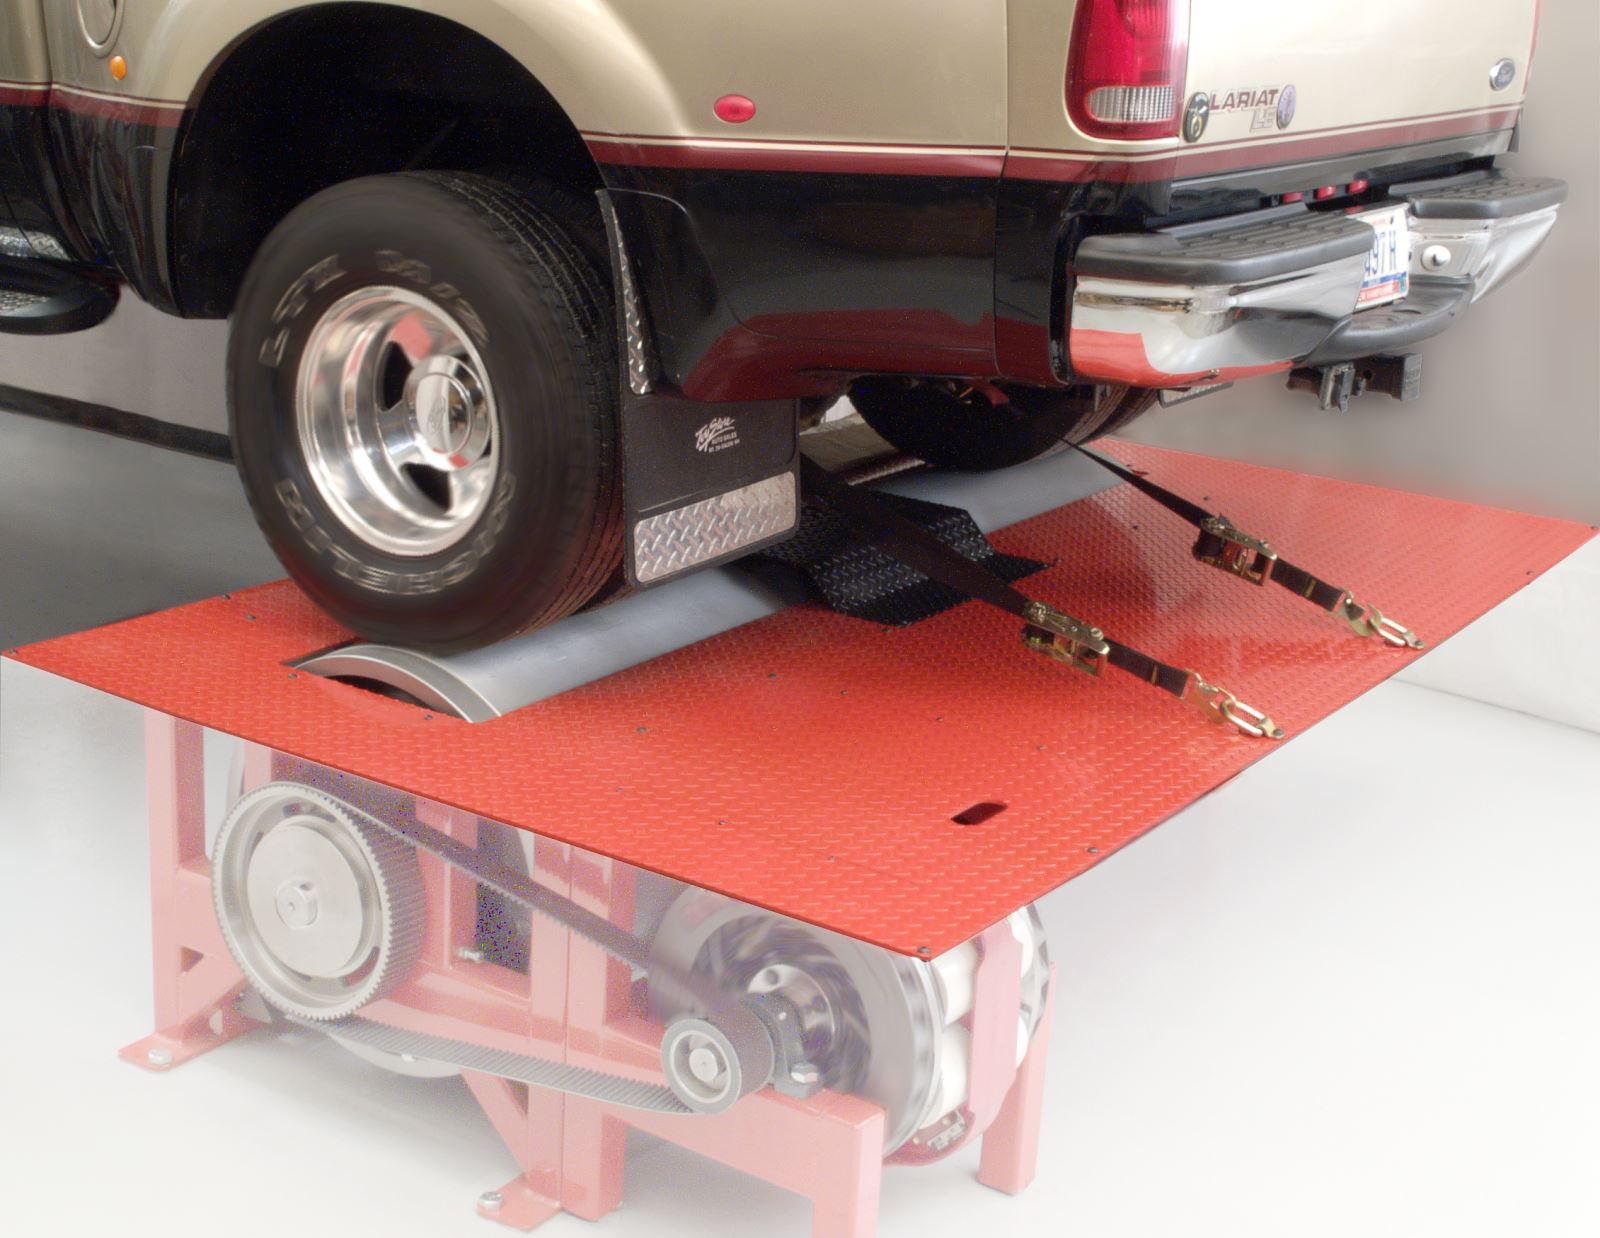 New Dynomite Truck Chassis Dynamometer Systems From Land